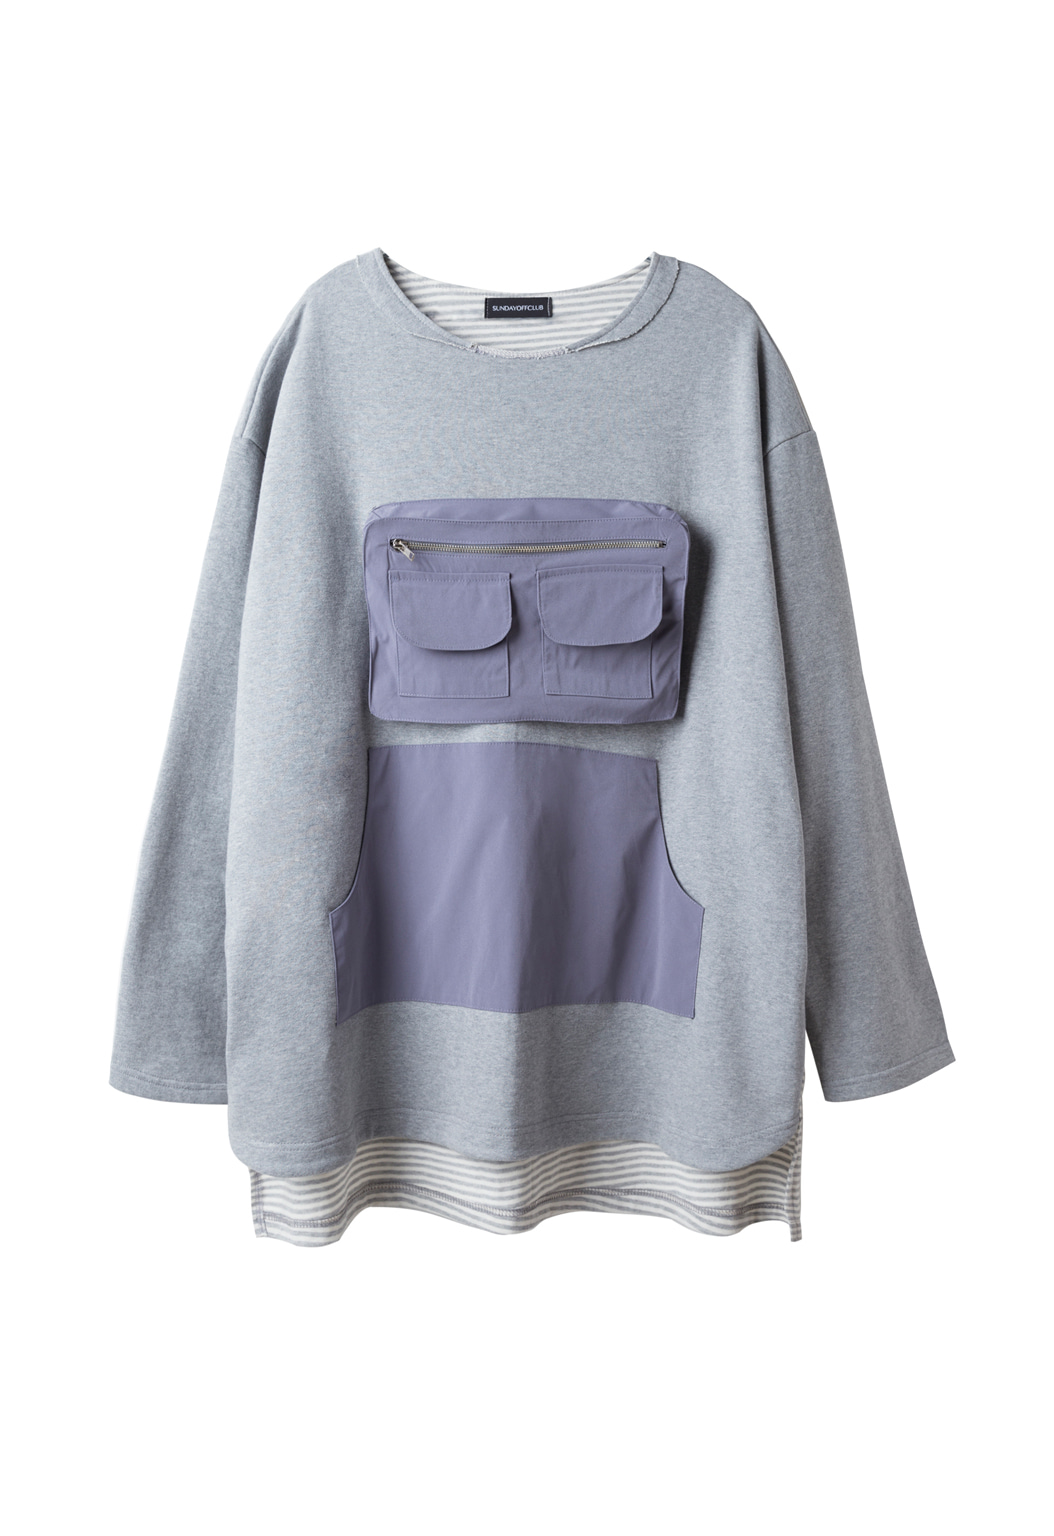 utility pocket sweatshirts - gray